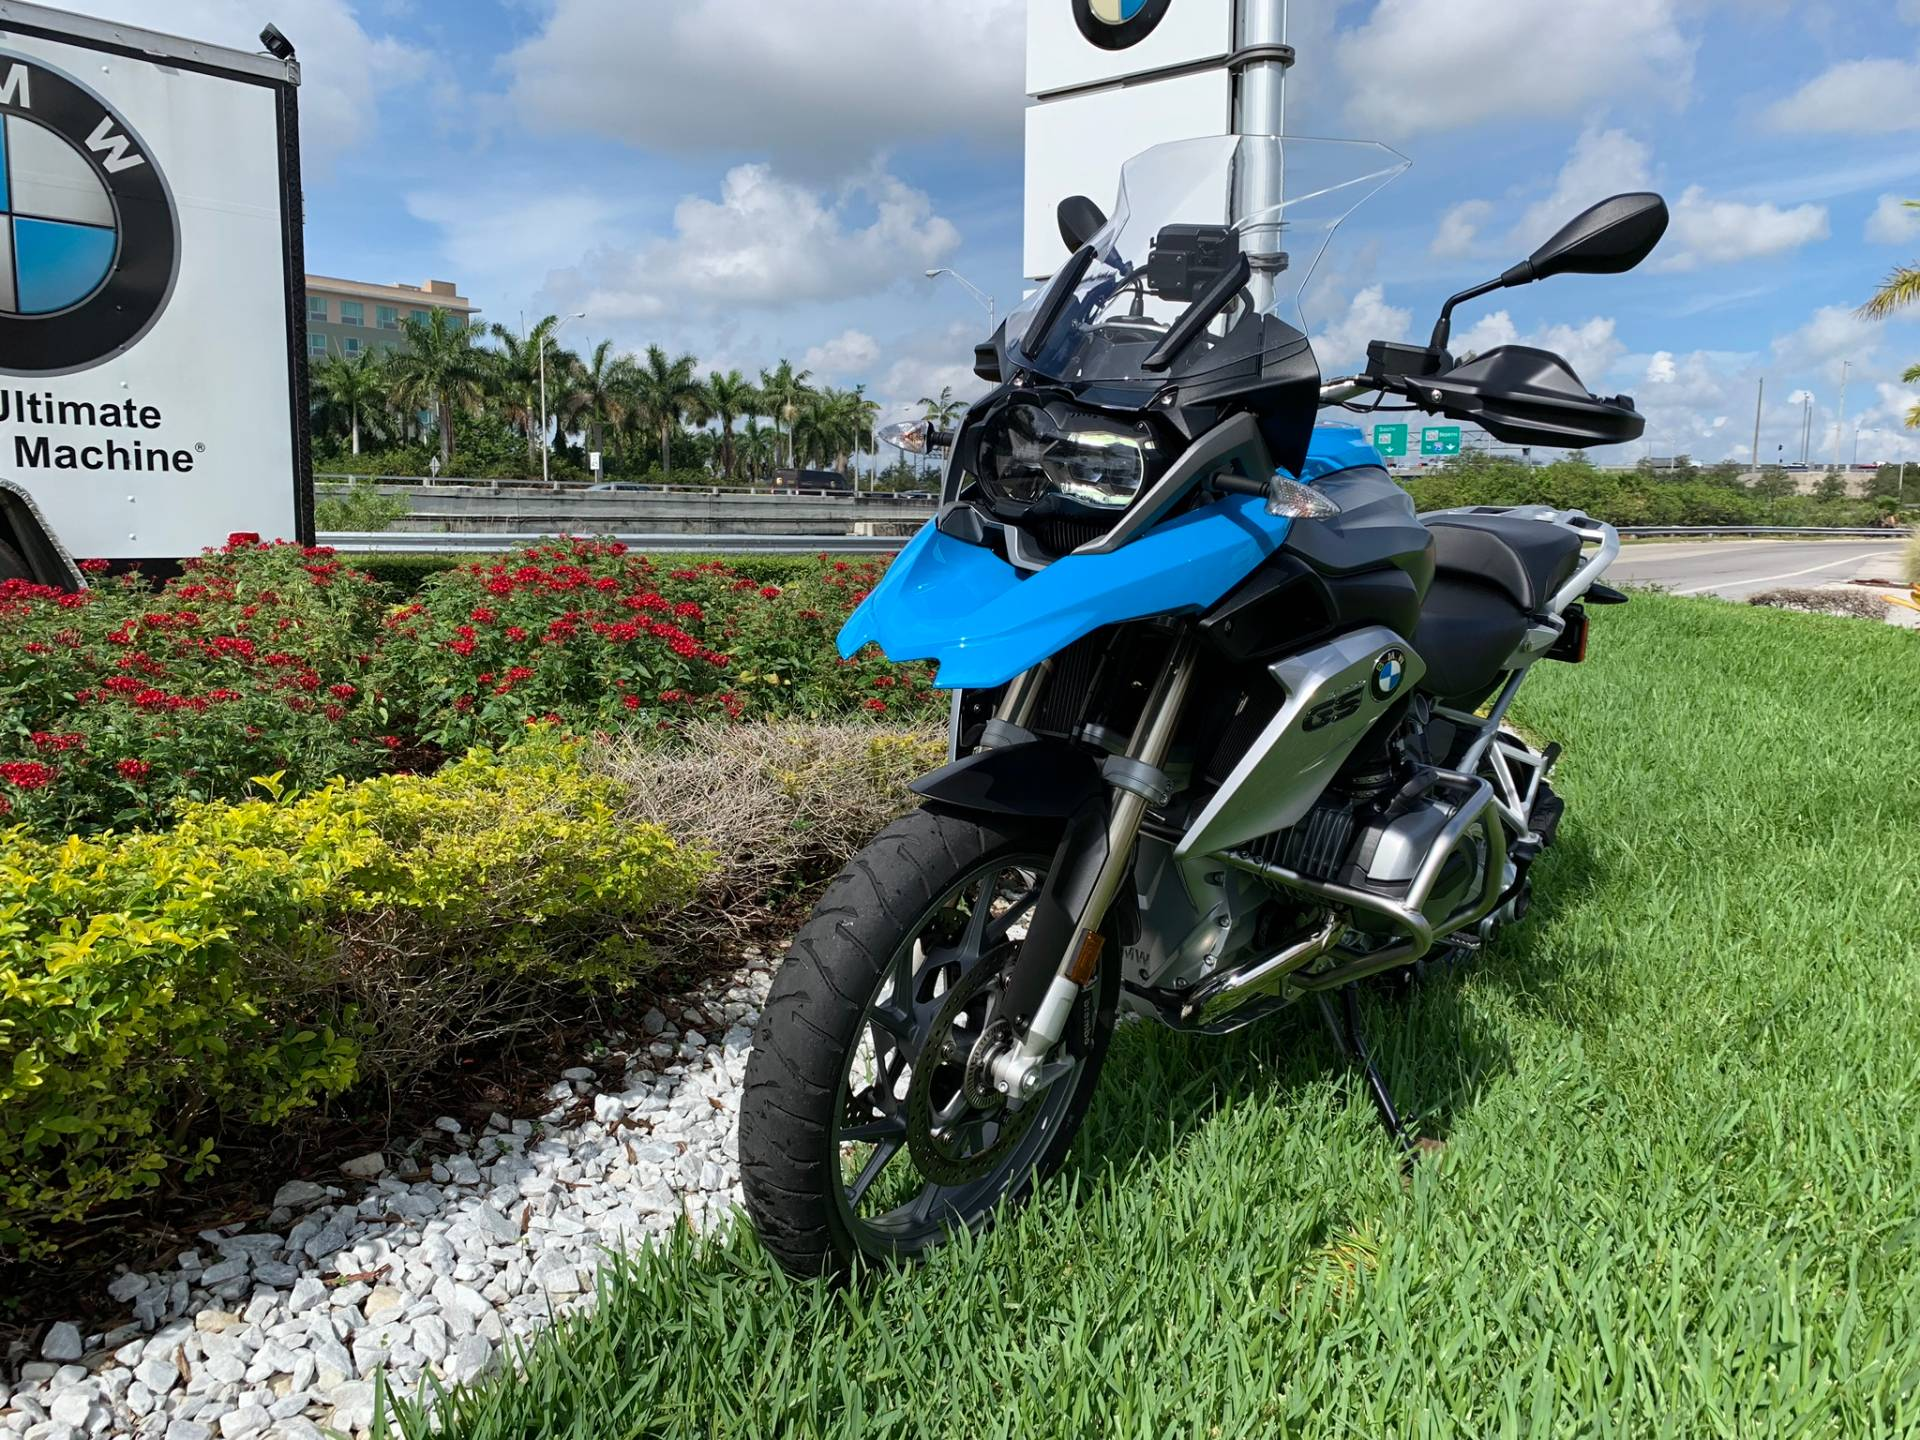 Used 2014 BMW R 1200 GS for sale, Pre-owned BMW R1200GS for sale, BMW Motorcycle Adventure, used BMW GS Fire Blue, BMW Motorcycles of Miami, Motorcycles of Miami, Motorcycles Miami, New Motorcycles, Used Motorcycles, pre-owned. #BMWMotorcyclesOfMiami #MotorcyclesOfMiami - Photo 4